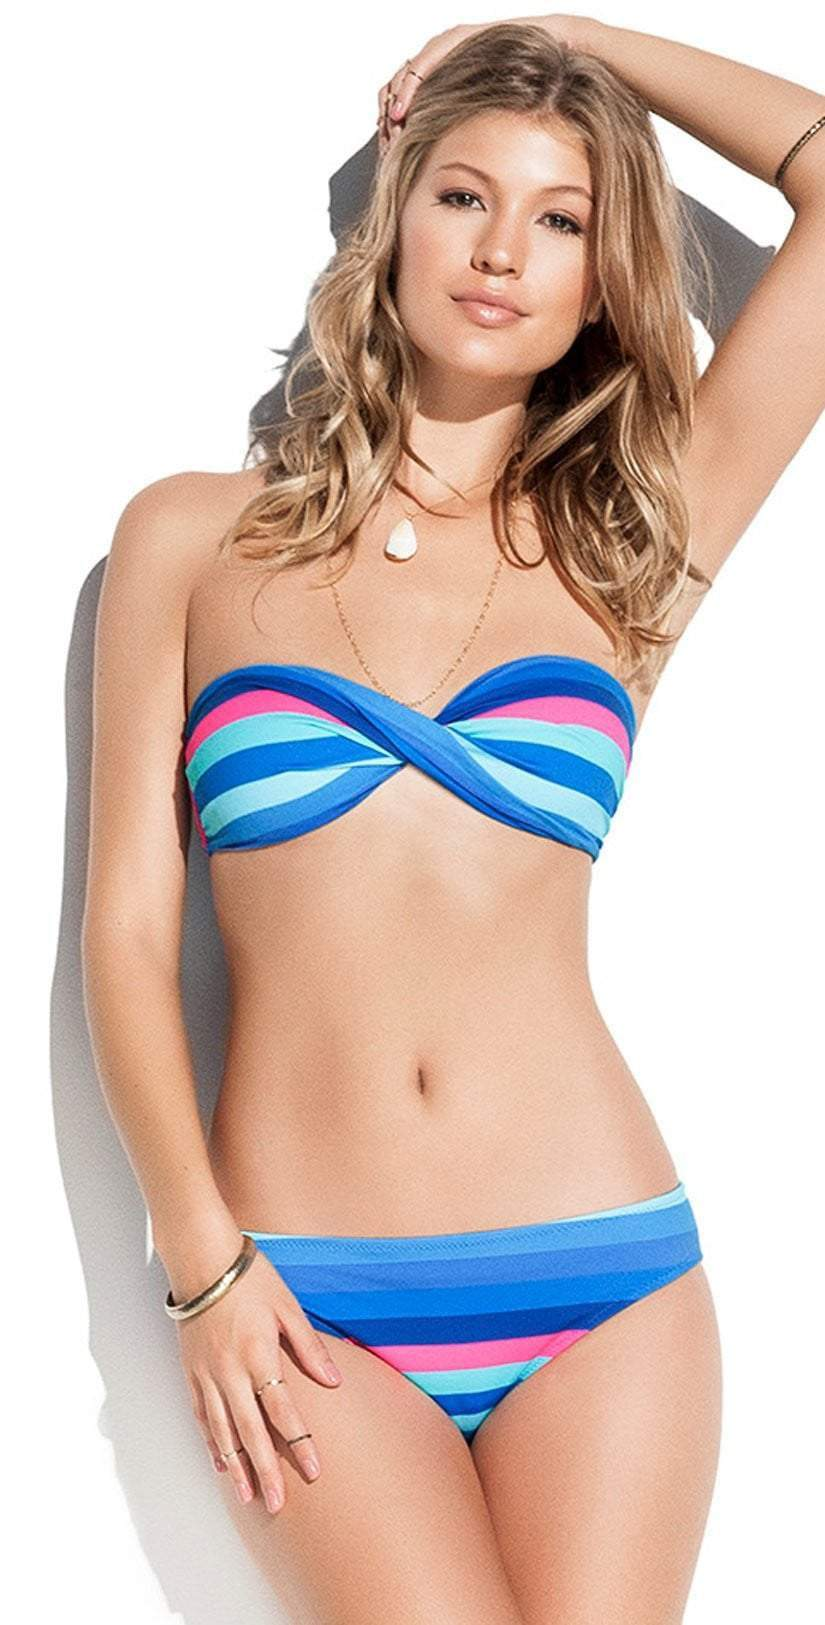 Phax Elemental Ray Bandeau Bikini Set